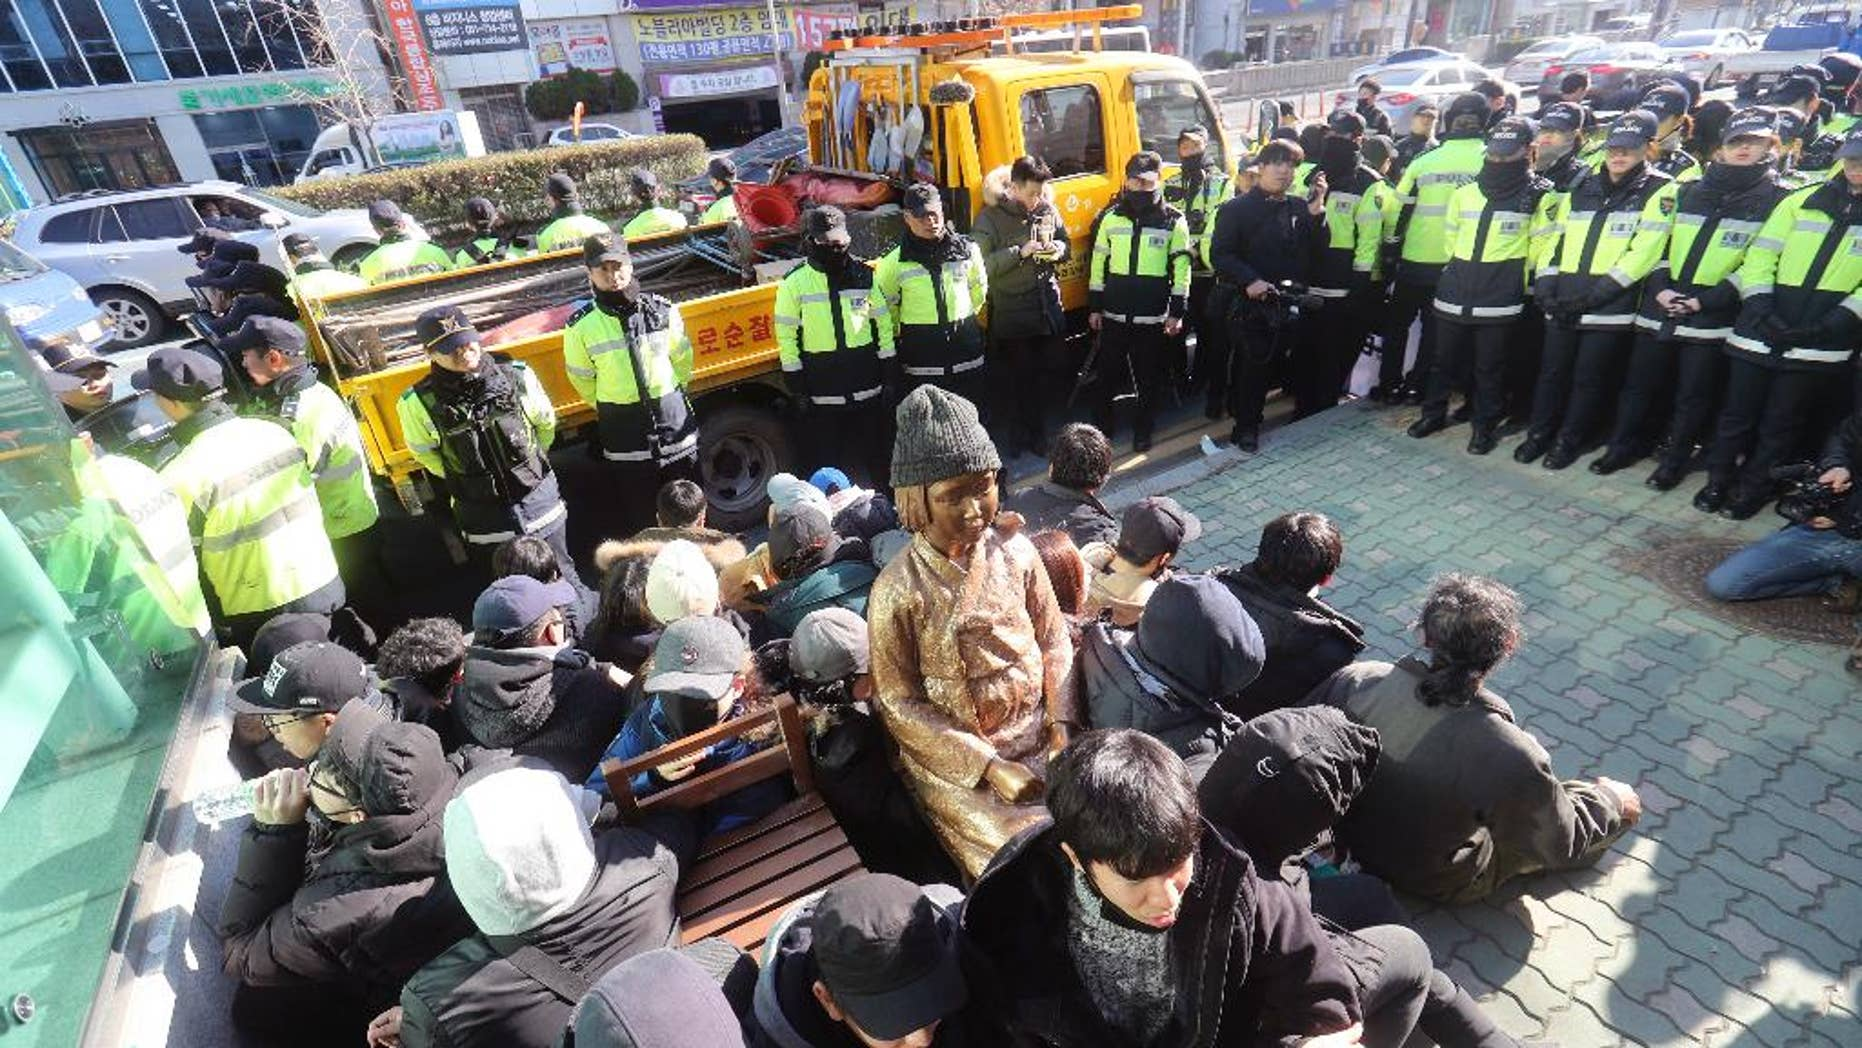 """In this Dec. 28, 2016, photo, members of civic groups sit around a comfort-woman statue after they set up in front of the Japanese consulate as police officers surround them in Busan, South Korea. Japan is recalling its ambassador to South Korea Friday, Jan. 6, 2017 in response to the placing of the statue. Many Koreans and other women in Asia were forced to work in brothels for the Japanese military during World War II in what was called the """"comfort-woman"""" system. (Kim Sun-ho/Yonhap via AP)"""